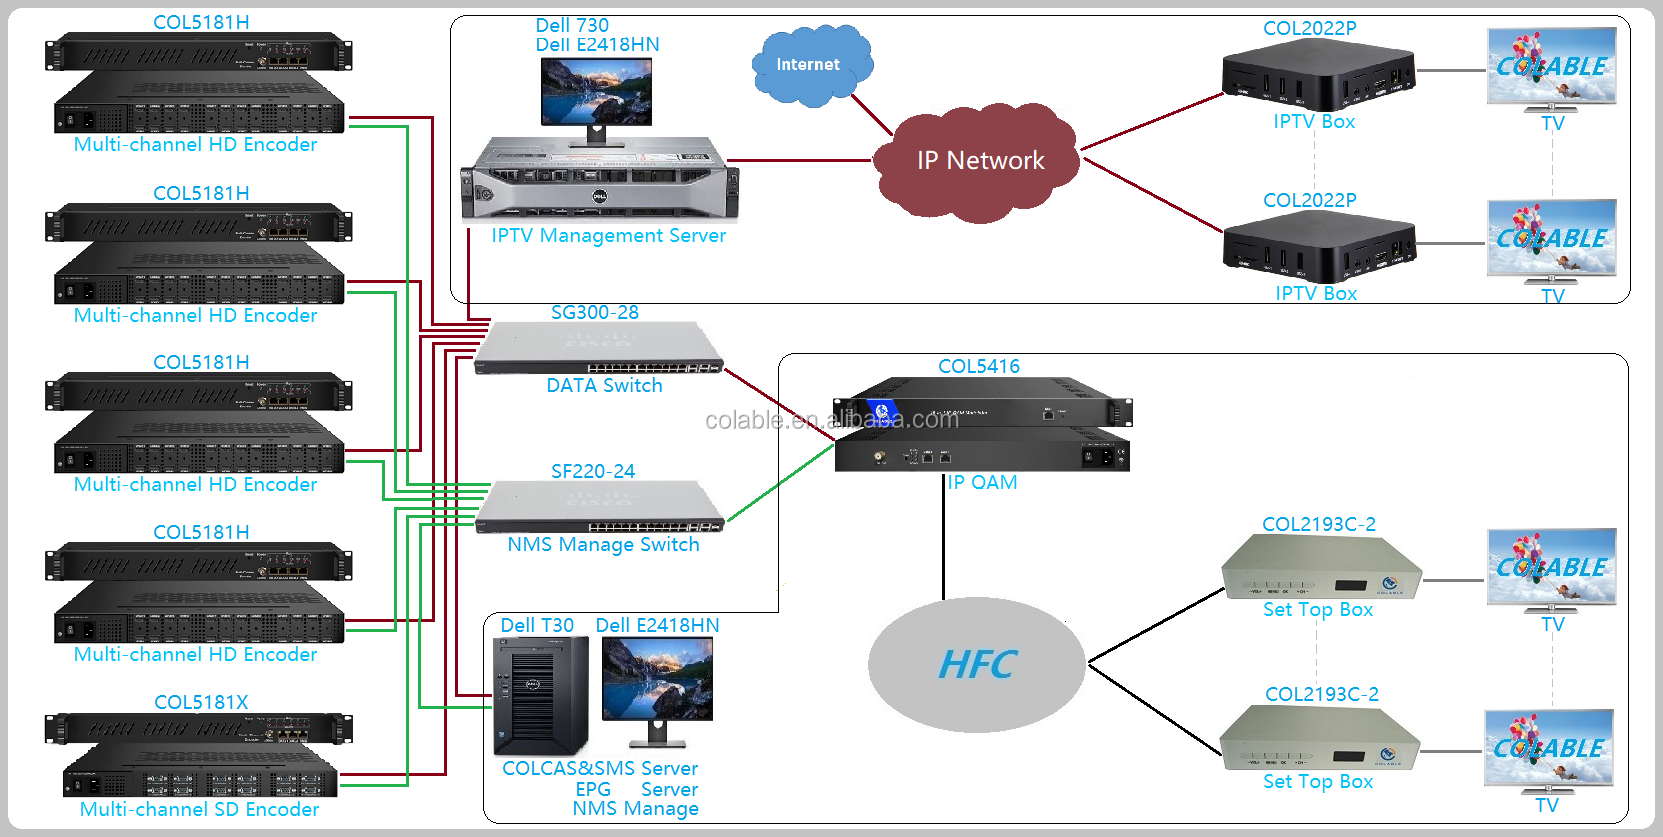 Vendita calda 16 HD 24 canali HD mpeg4 H.264 tv via cavo video digitale IP streaming IPTV encoder COL5181H